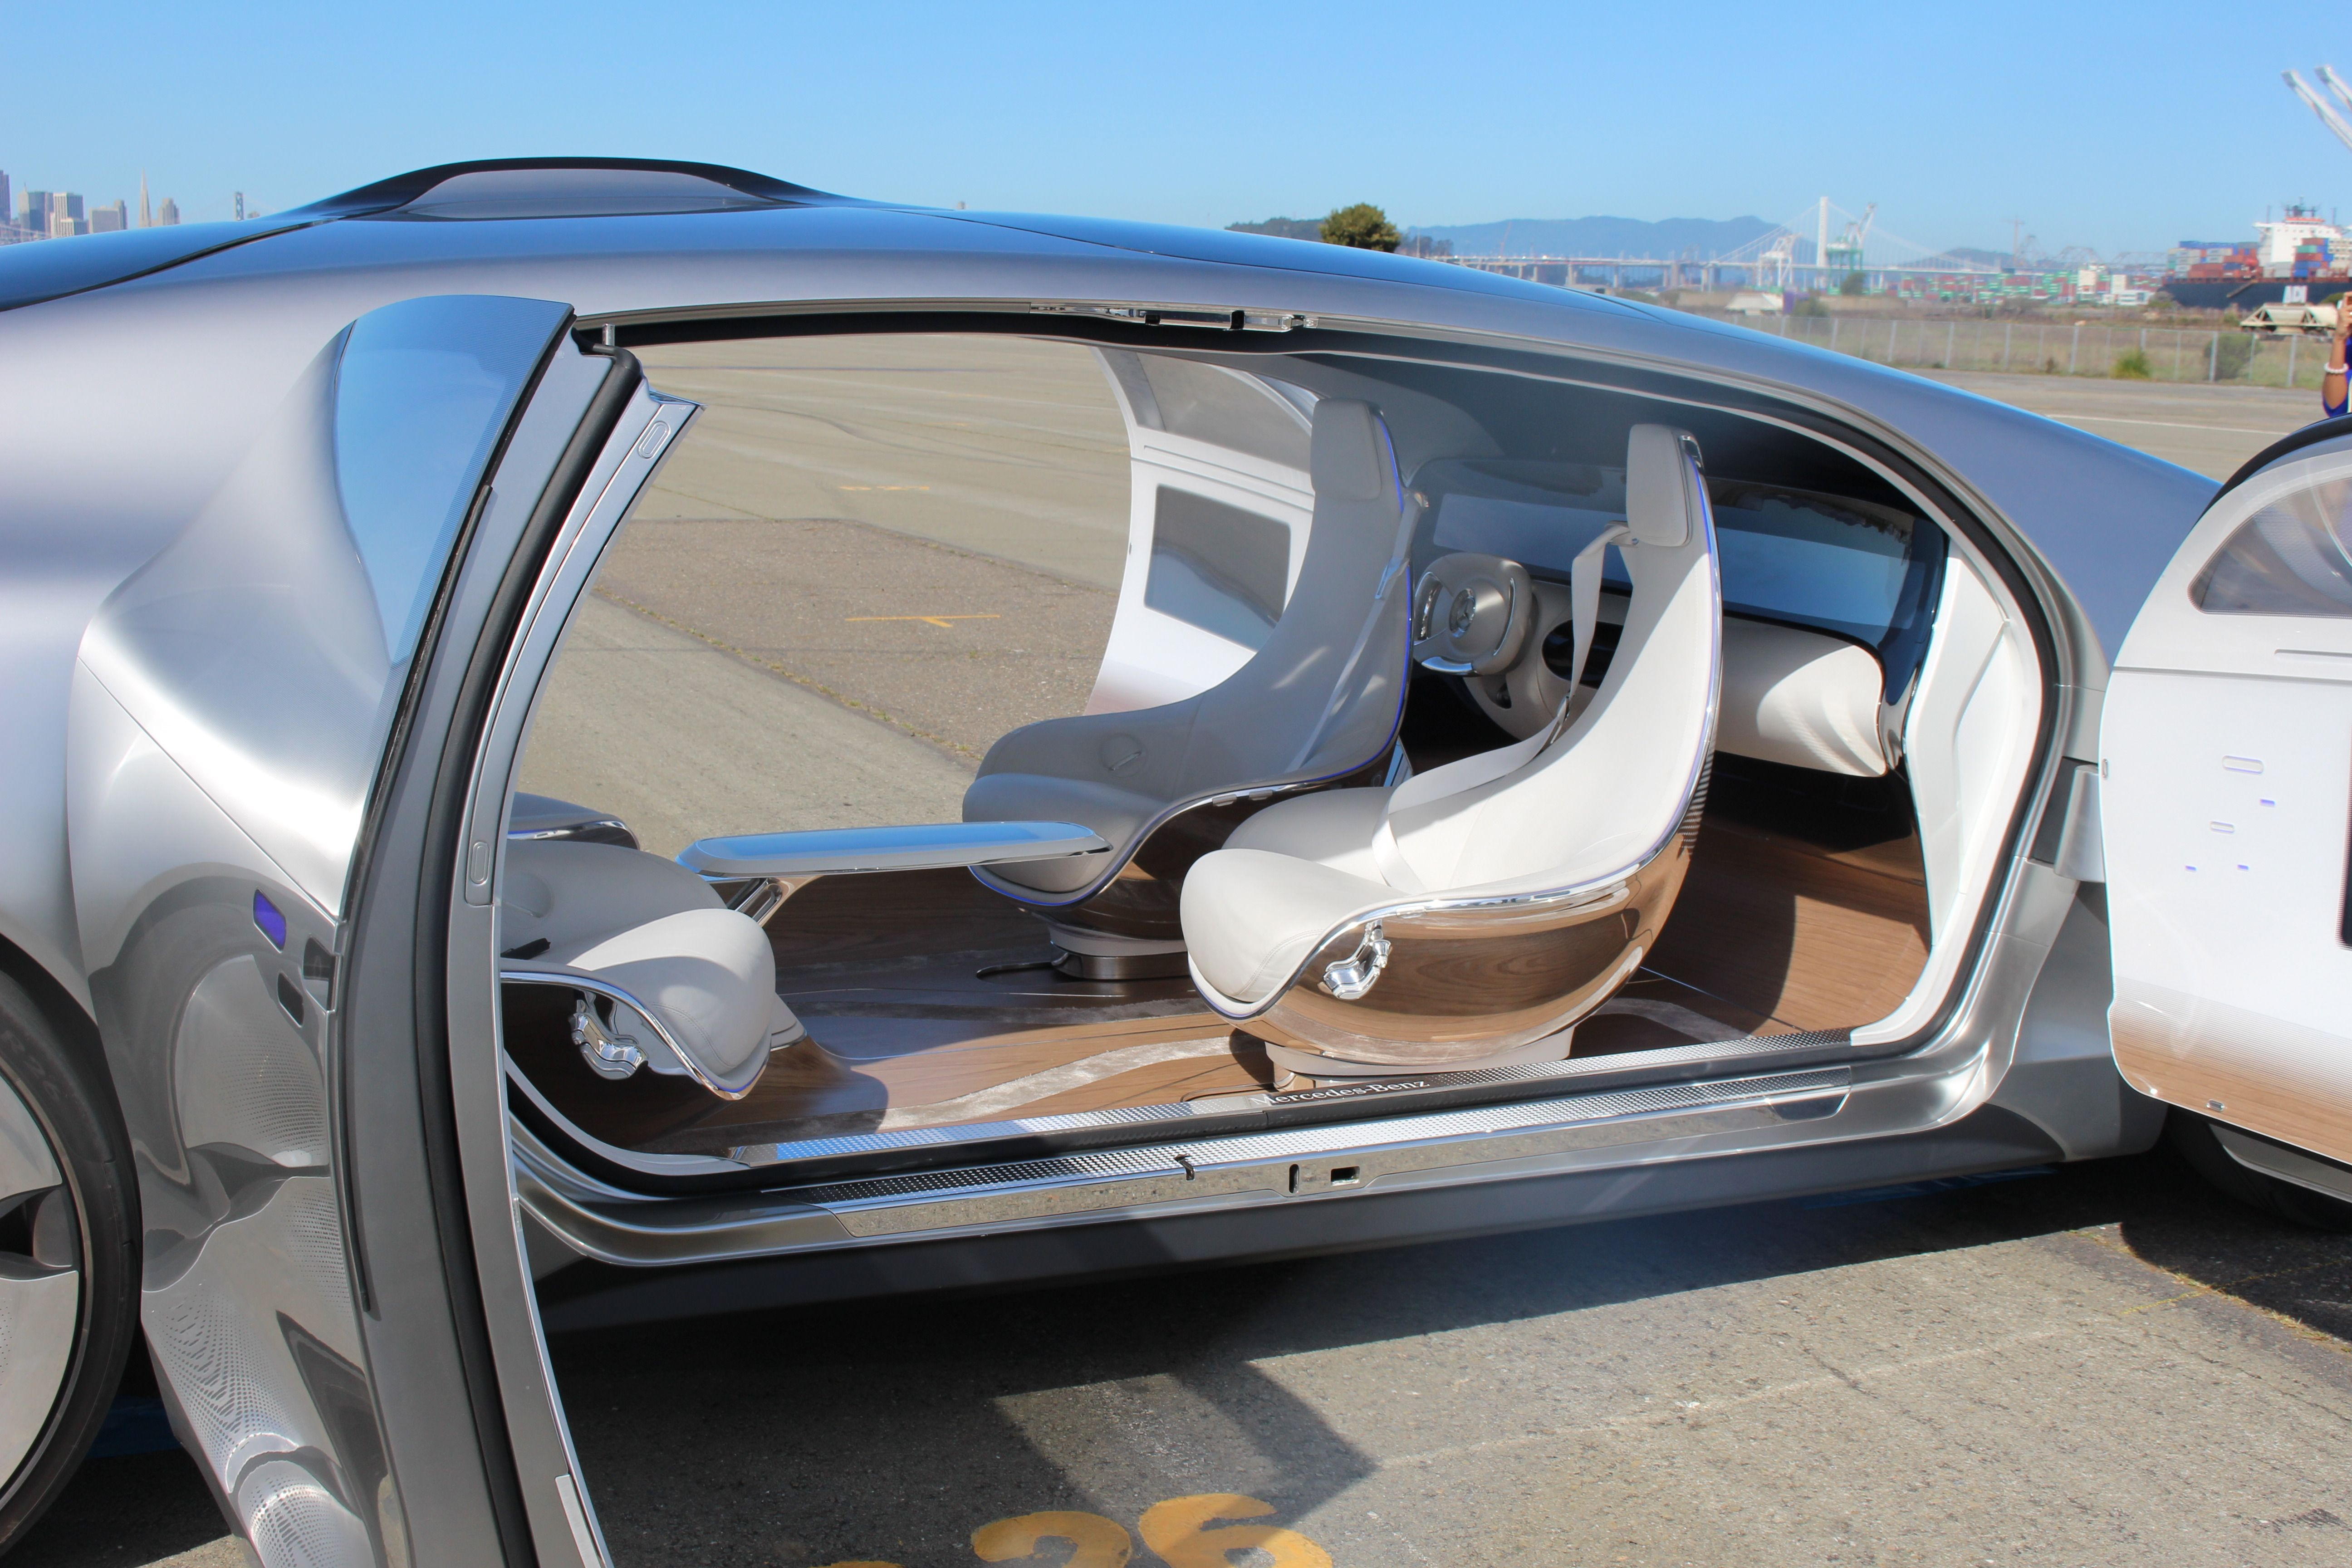 Riding In The Mercedes Benz F 015 Concept Car The Self Driving